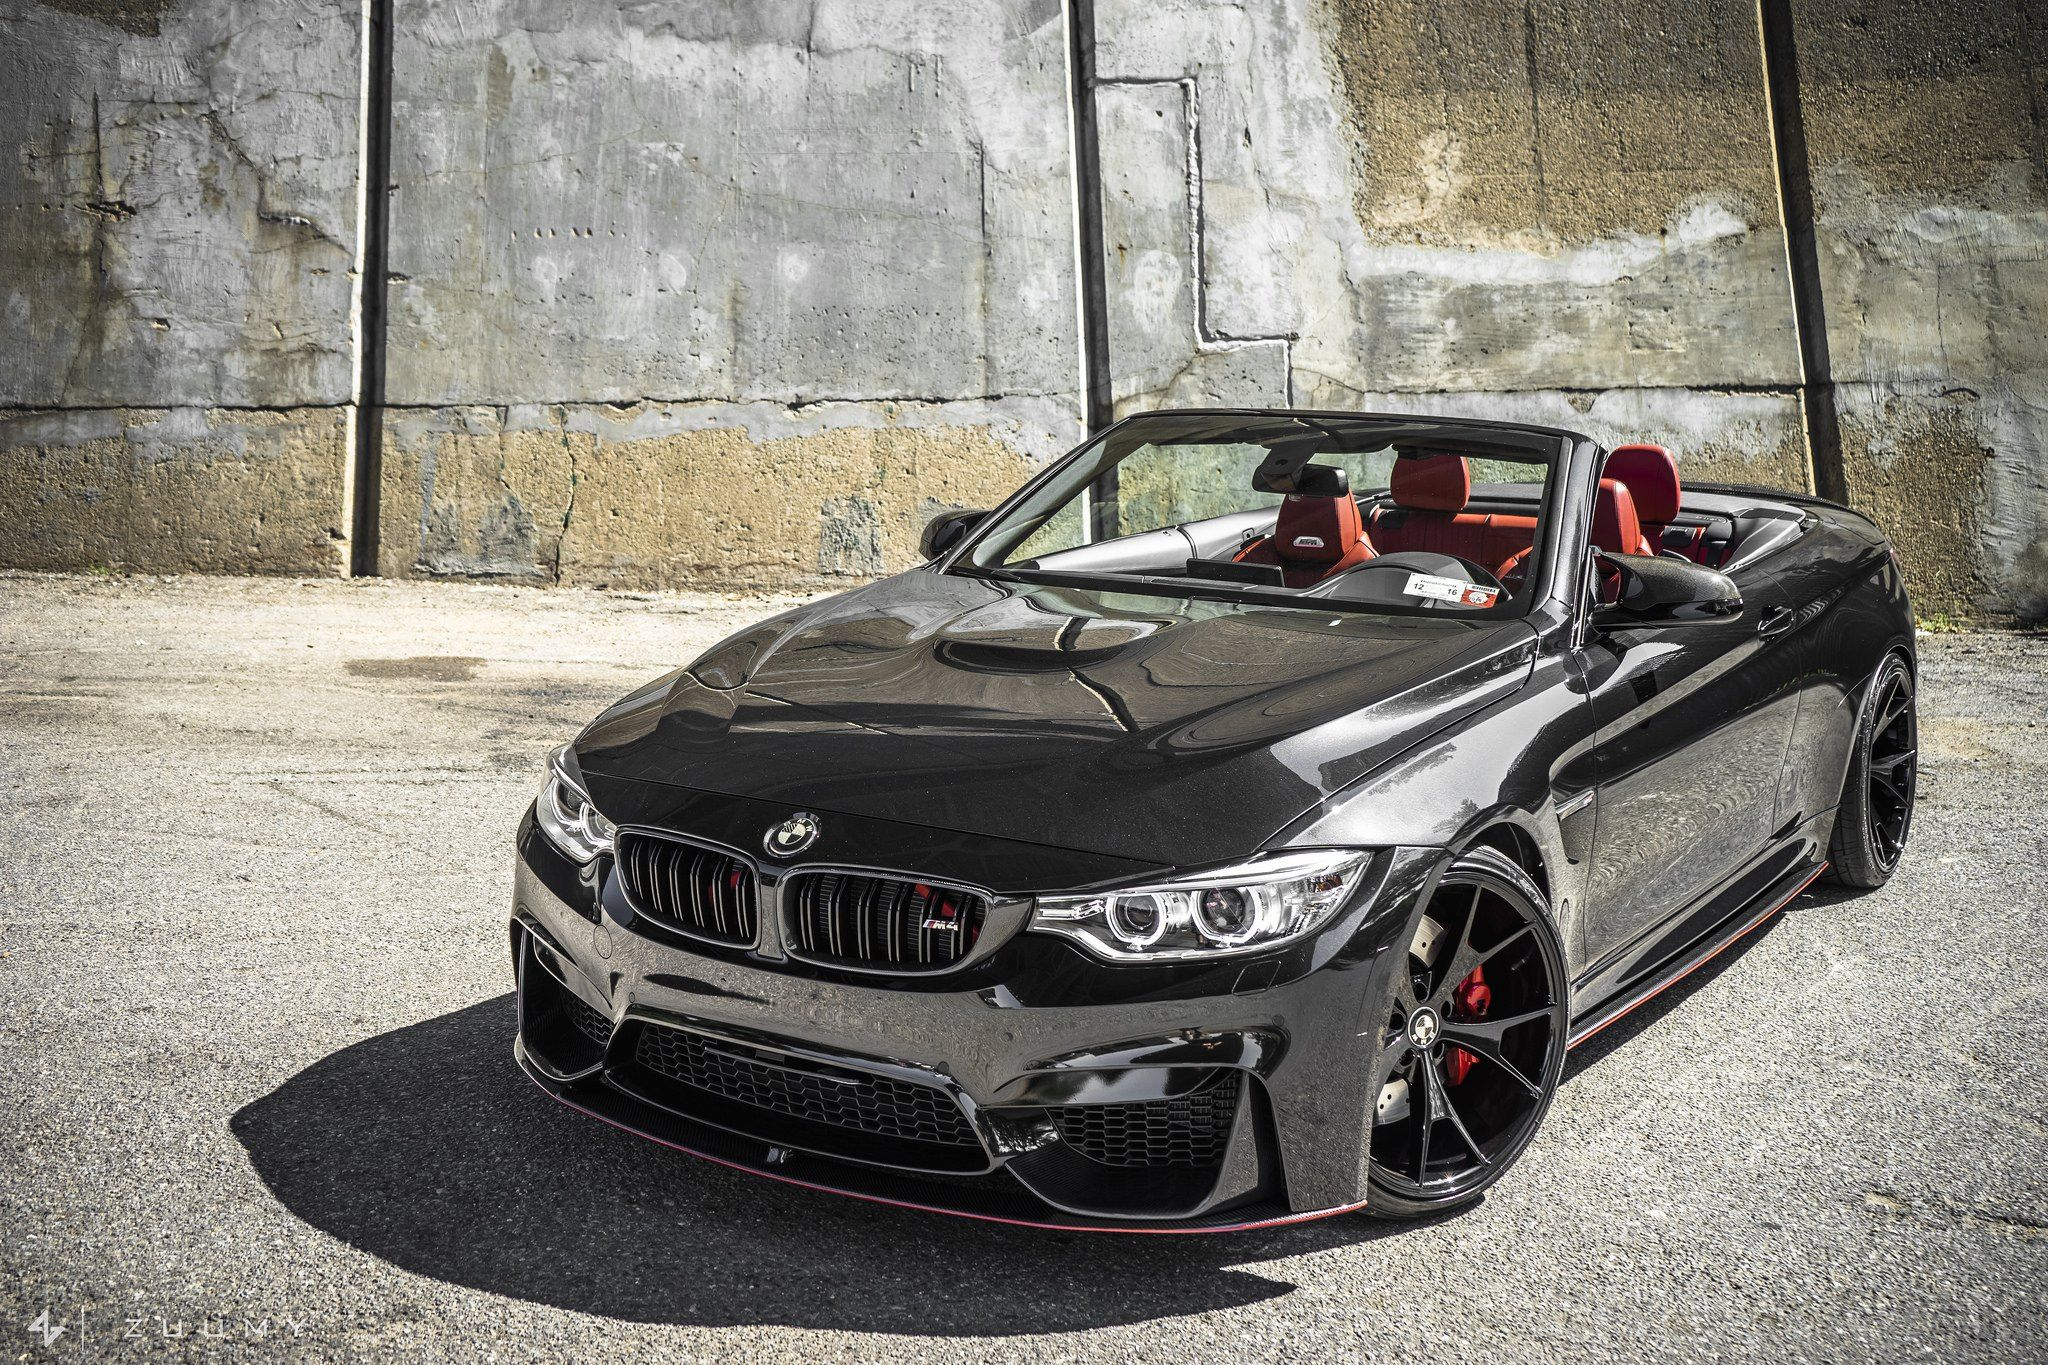 Bmw M4 Convertible On Stylish Csm5 Rims By Concept One Bmw Convertible Bmw M4 Bmw